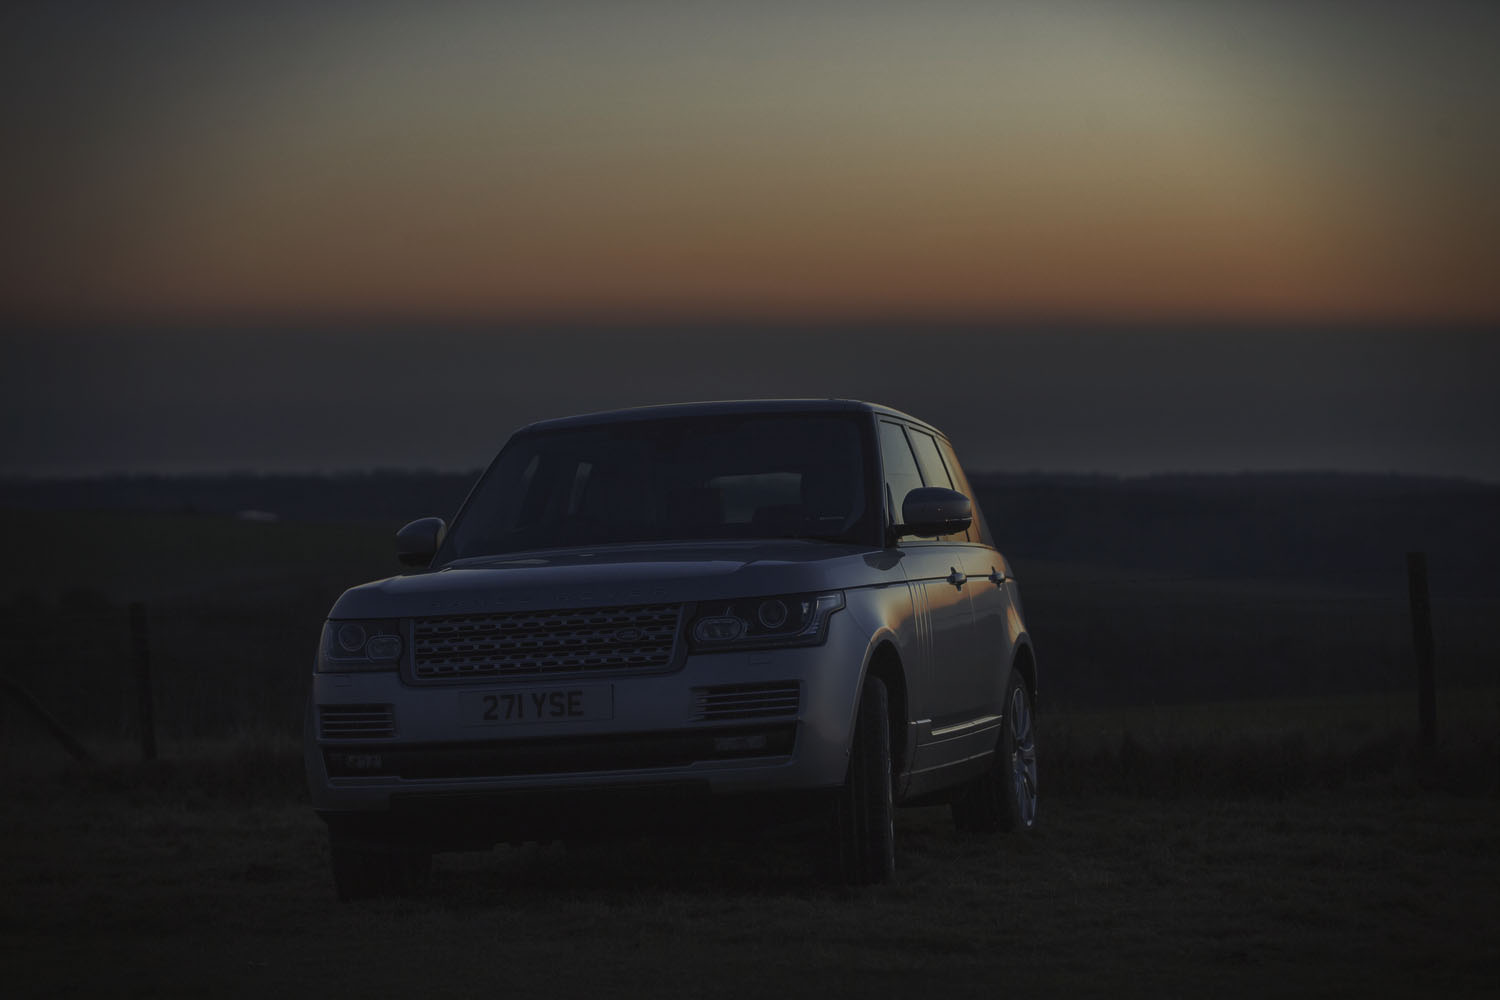 Range Rover silhouetted at sunset during a Commercial advertising automotive photography shoot.  off road in the Sussex for Land Rover. Packshot. Highlighting the Great British Outdoors, craftmanship, rural life and heritage brands. food photography still life.